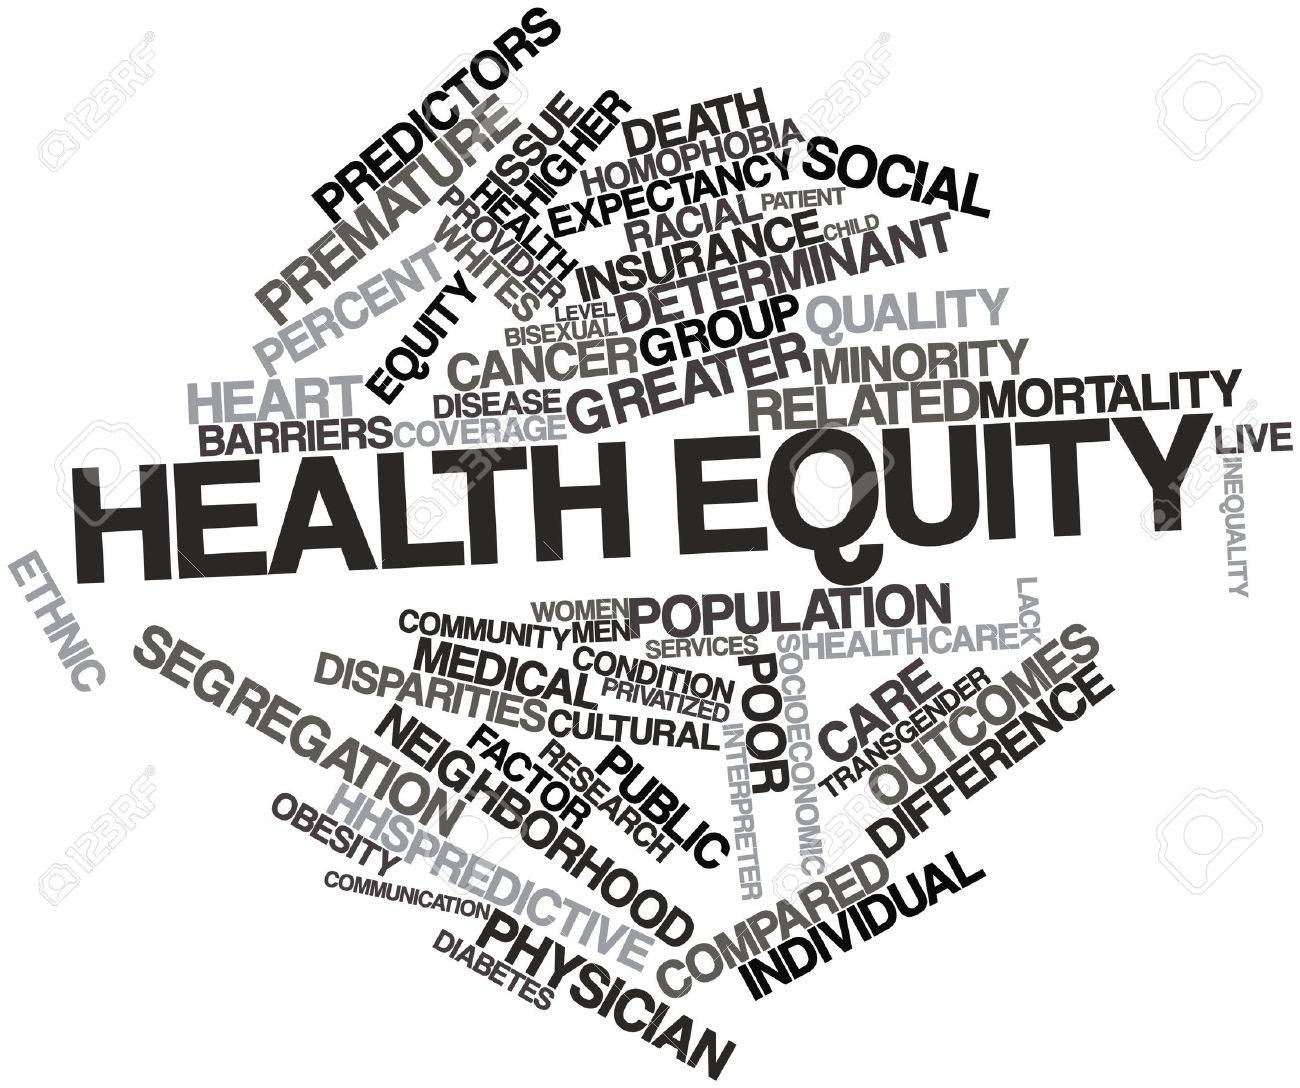 What Does Health Equity Mean